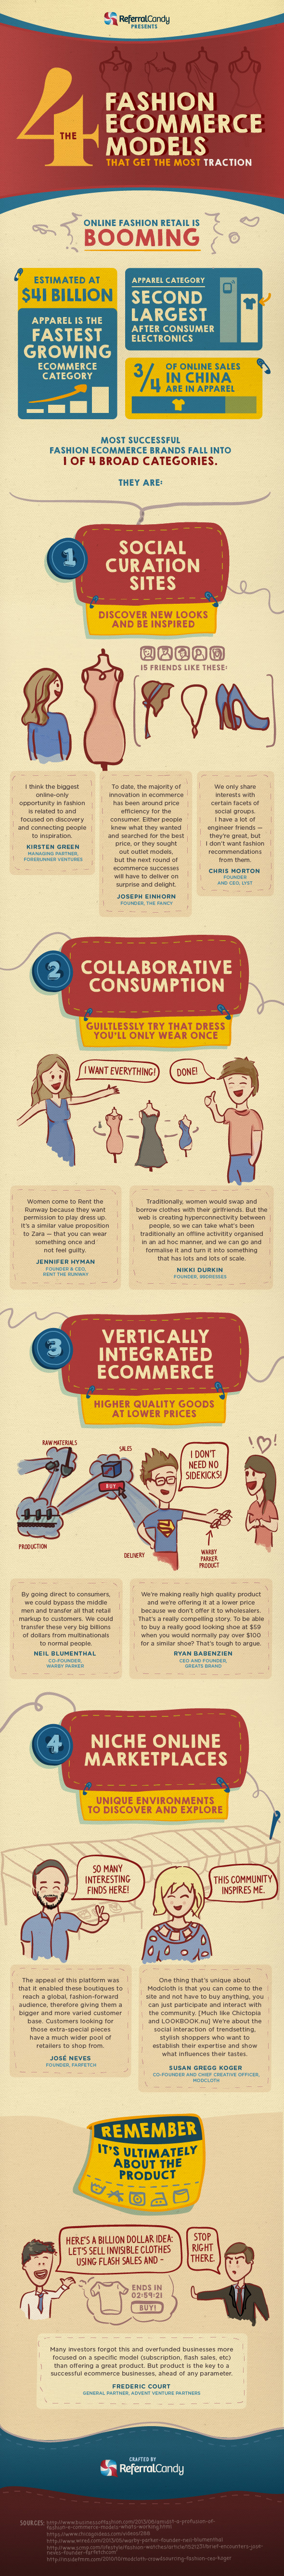 The 4 Fashion Ecommerce Models That Get The Most Traction [Infographic]